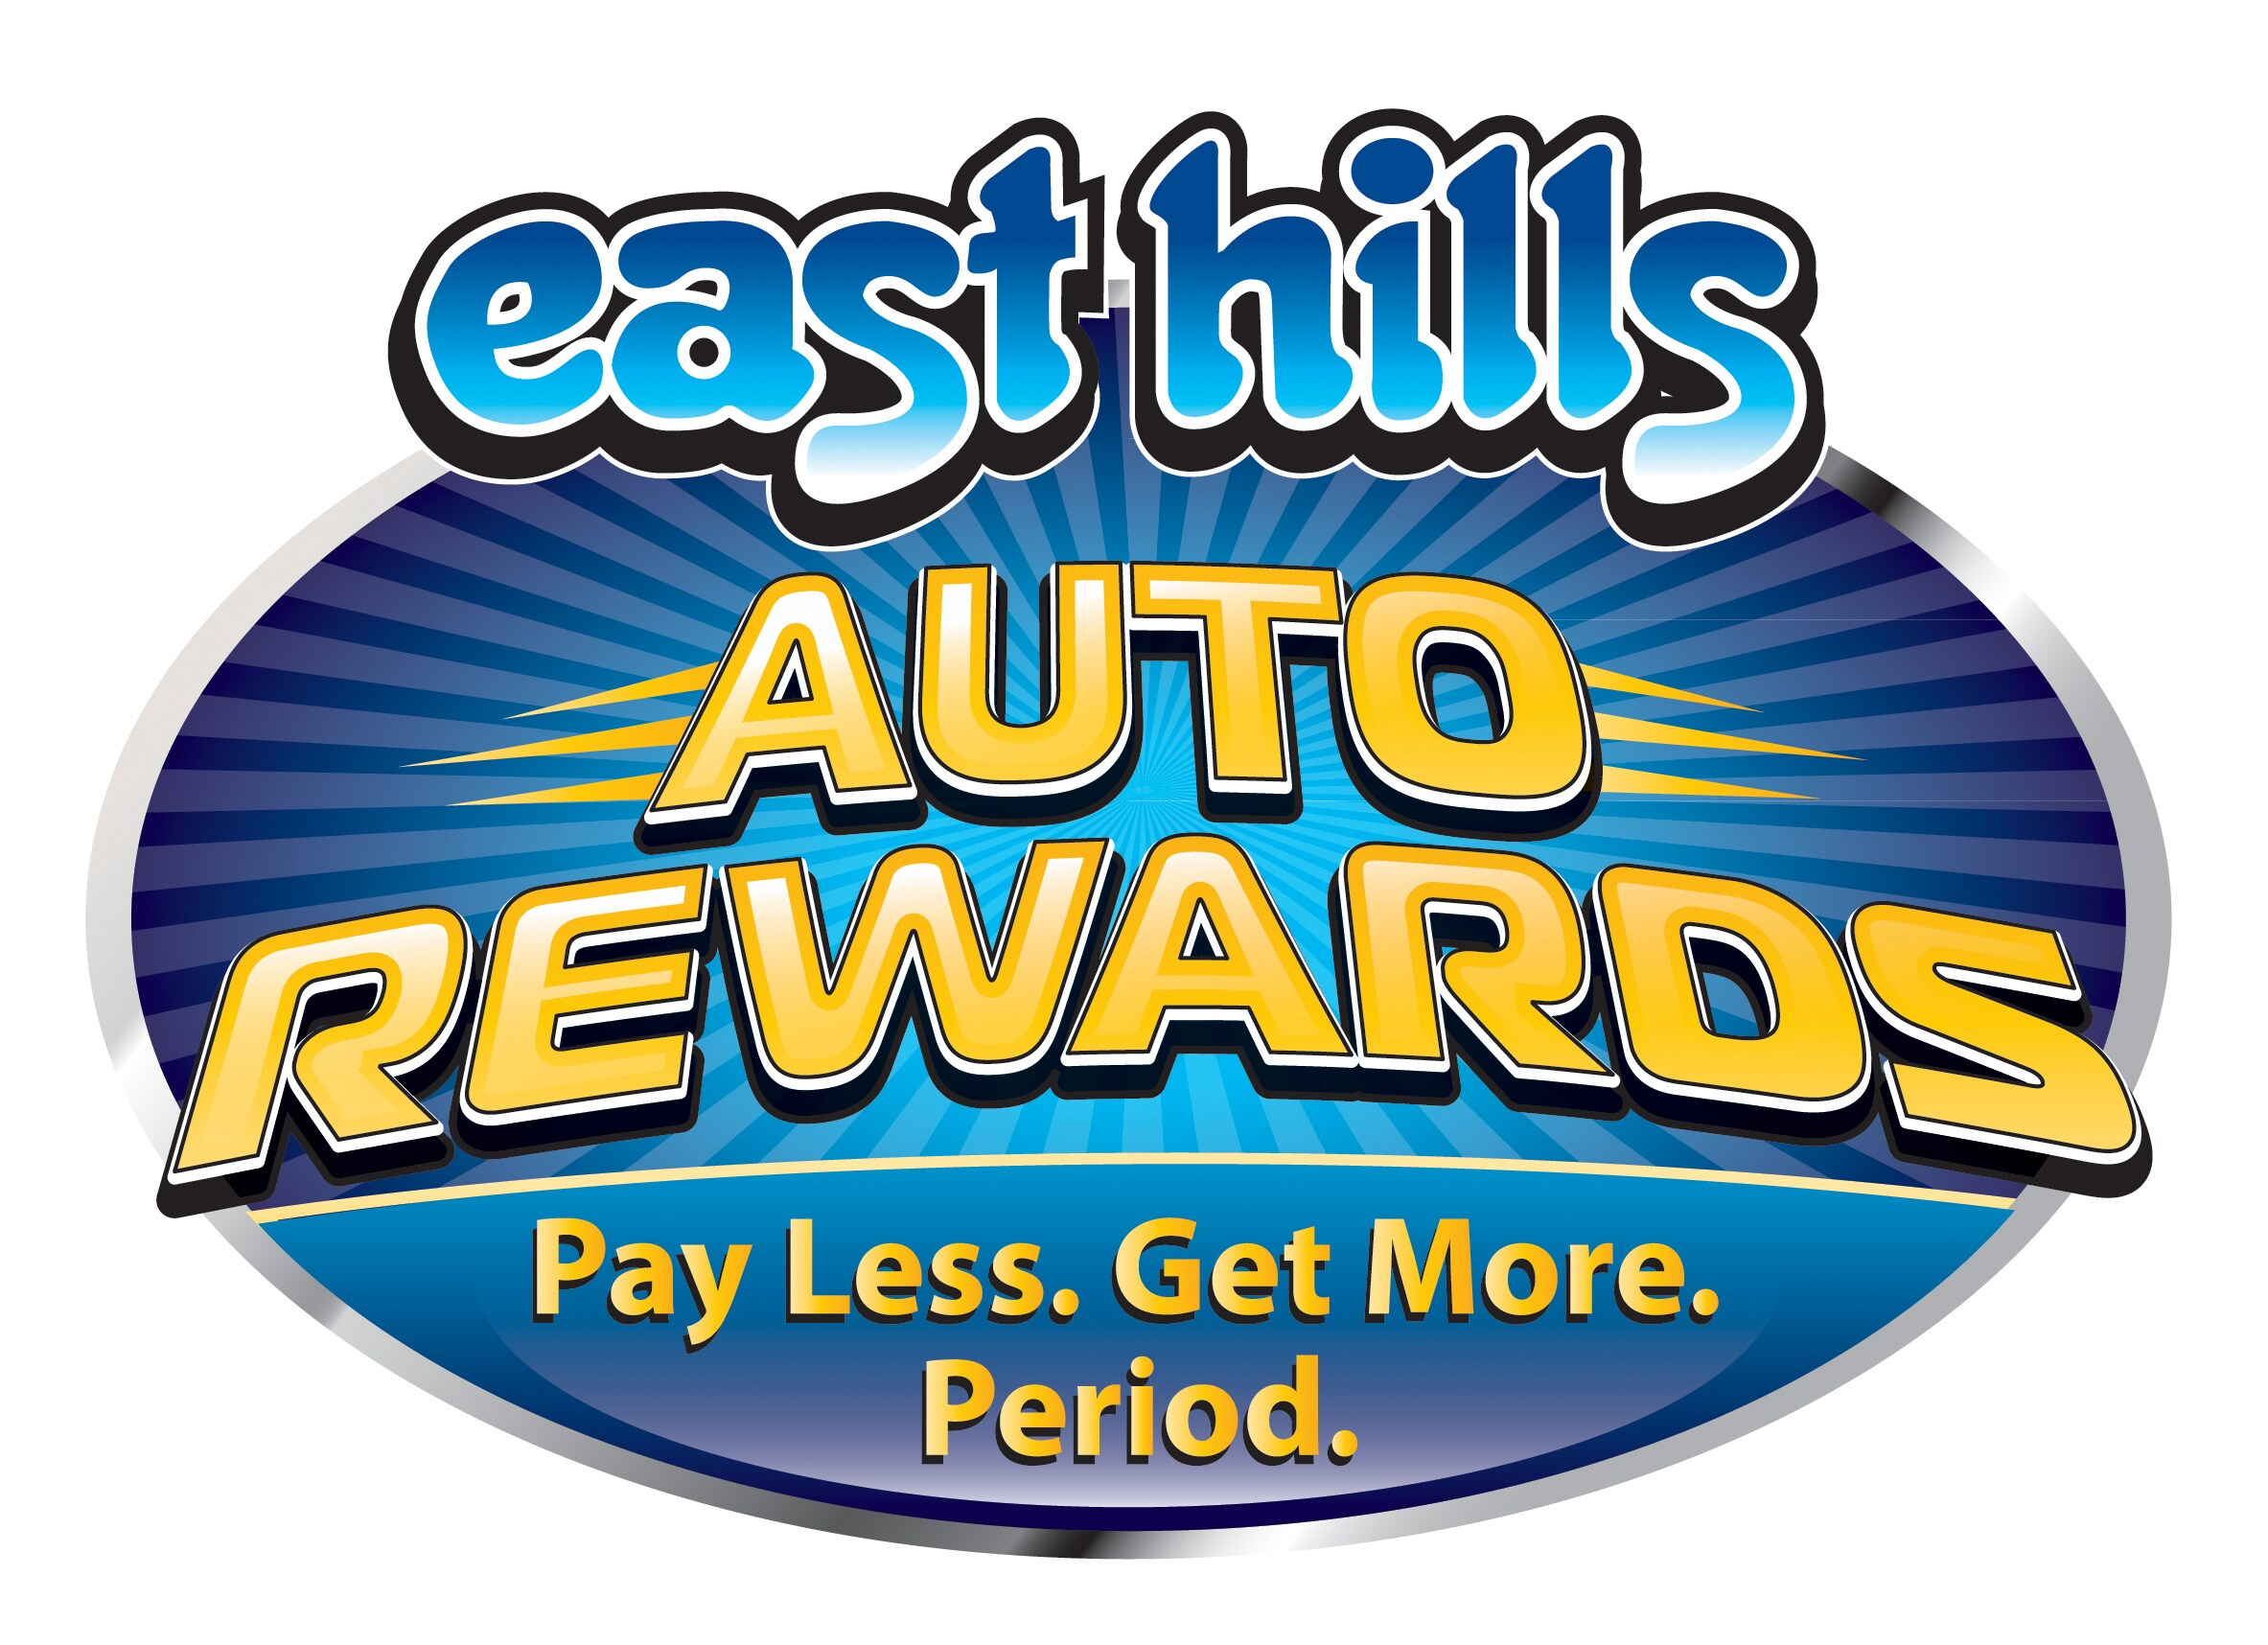 Included with new or used vehicle purchase. Click here for details.